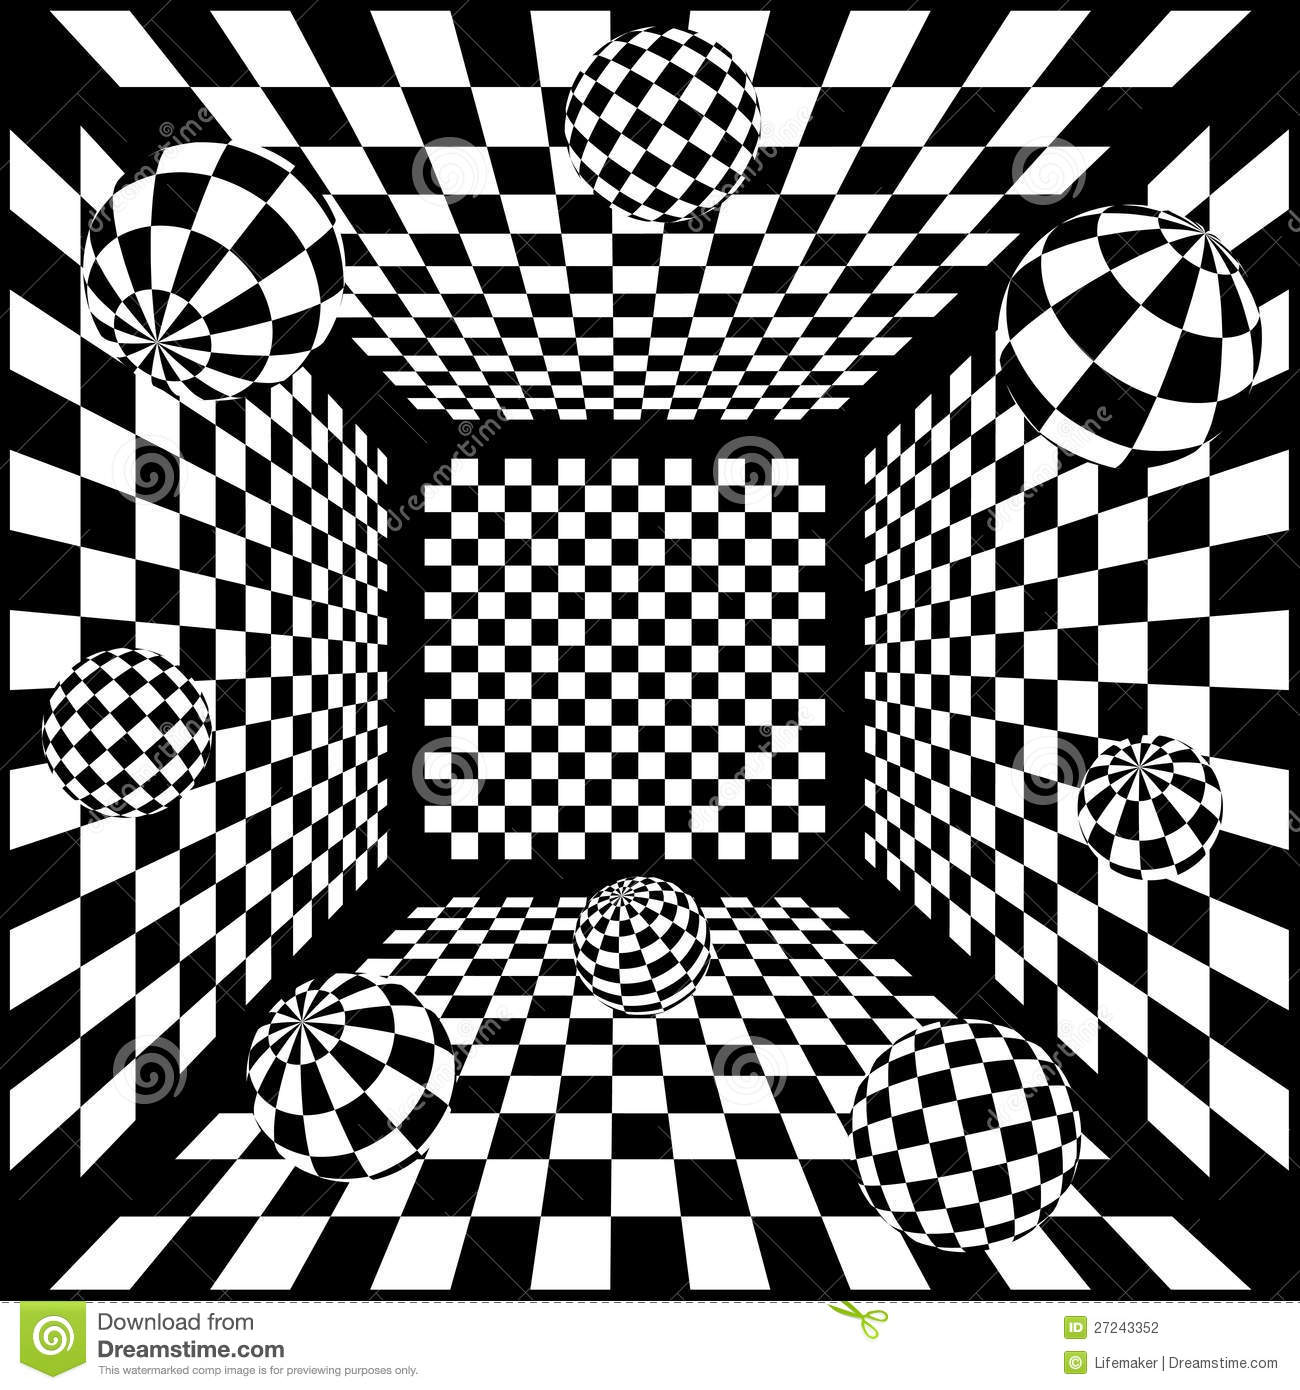 3d abstract black and white chess background with